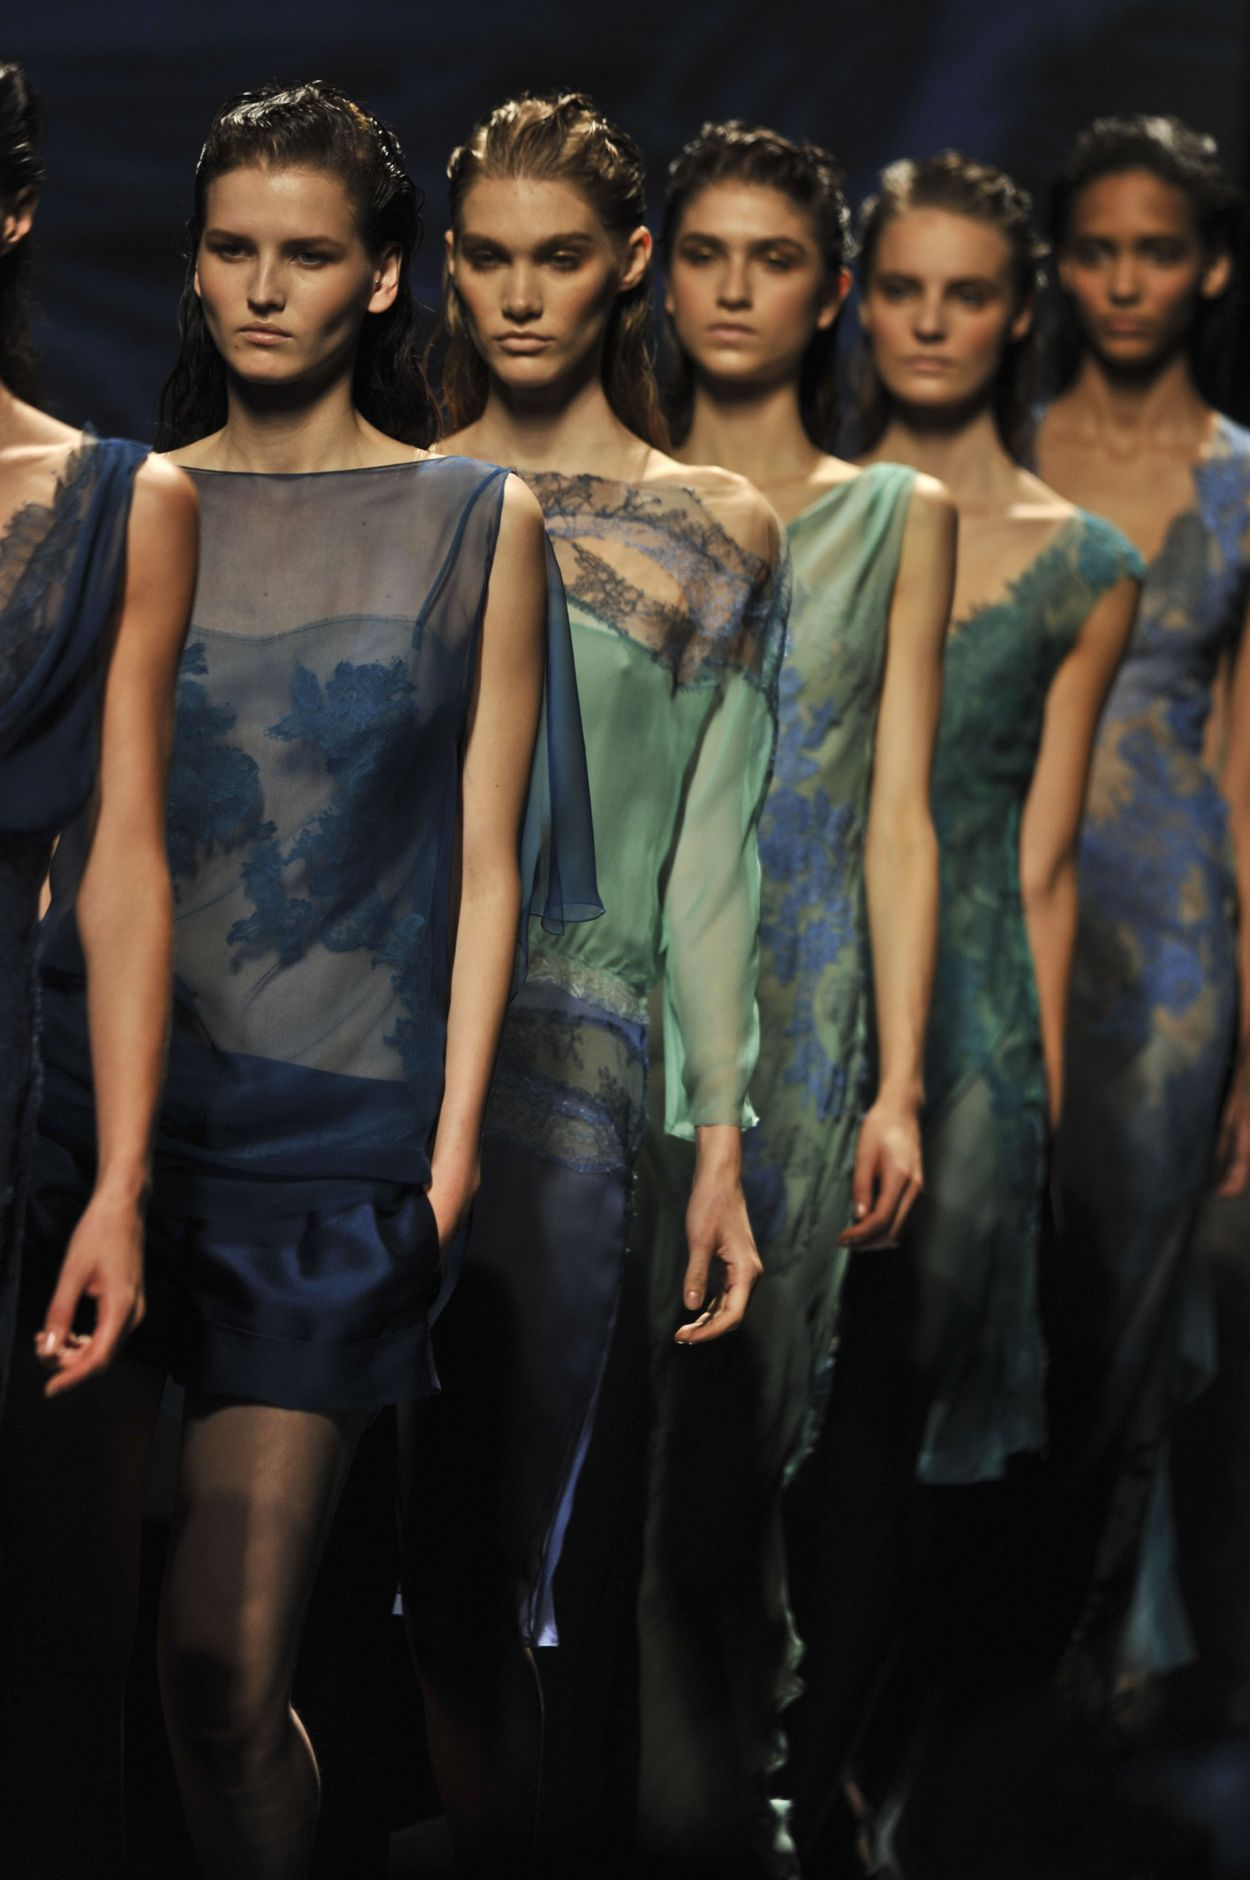 ALBERTA FERRETTI SPRING SUMMER 2013 WOMEN'S COLLECTION | The Skinny Beep